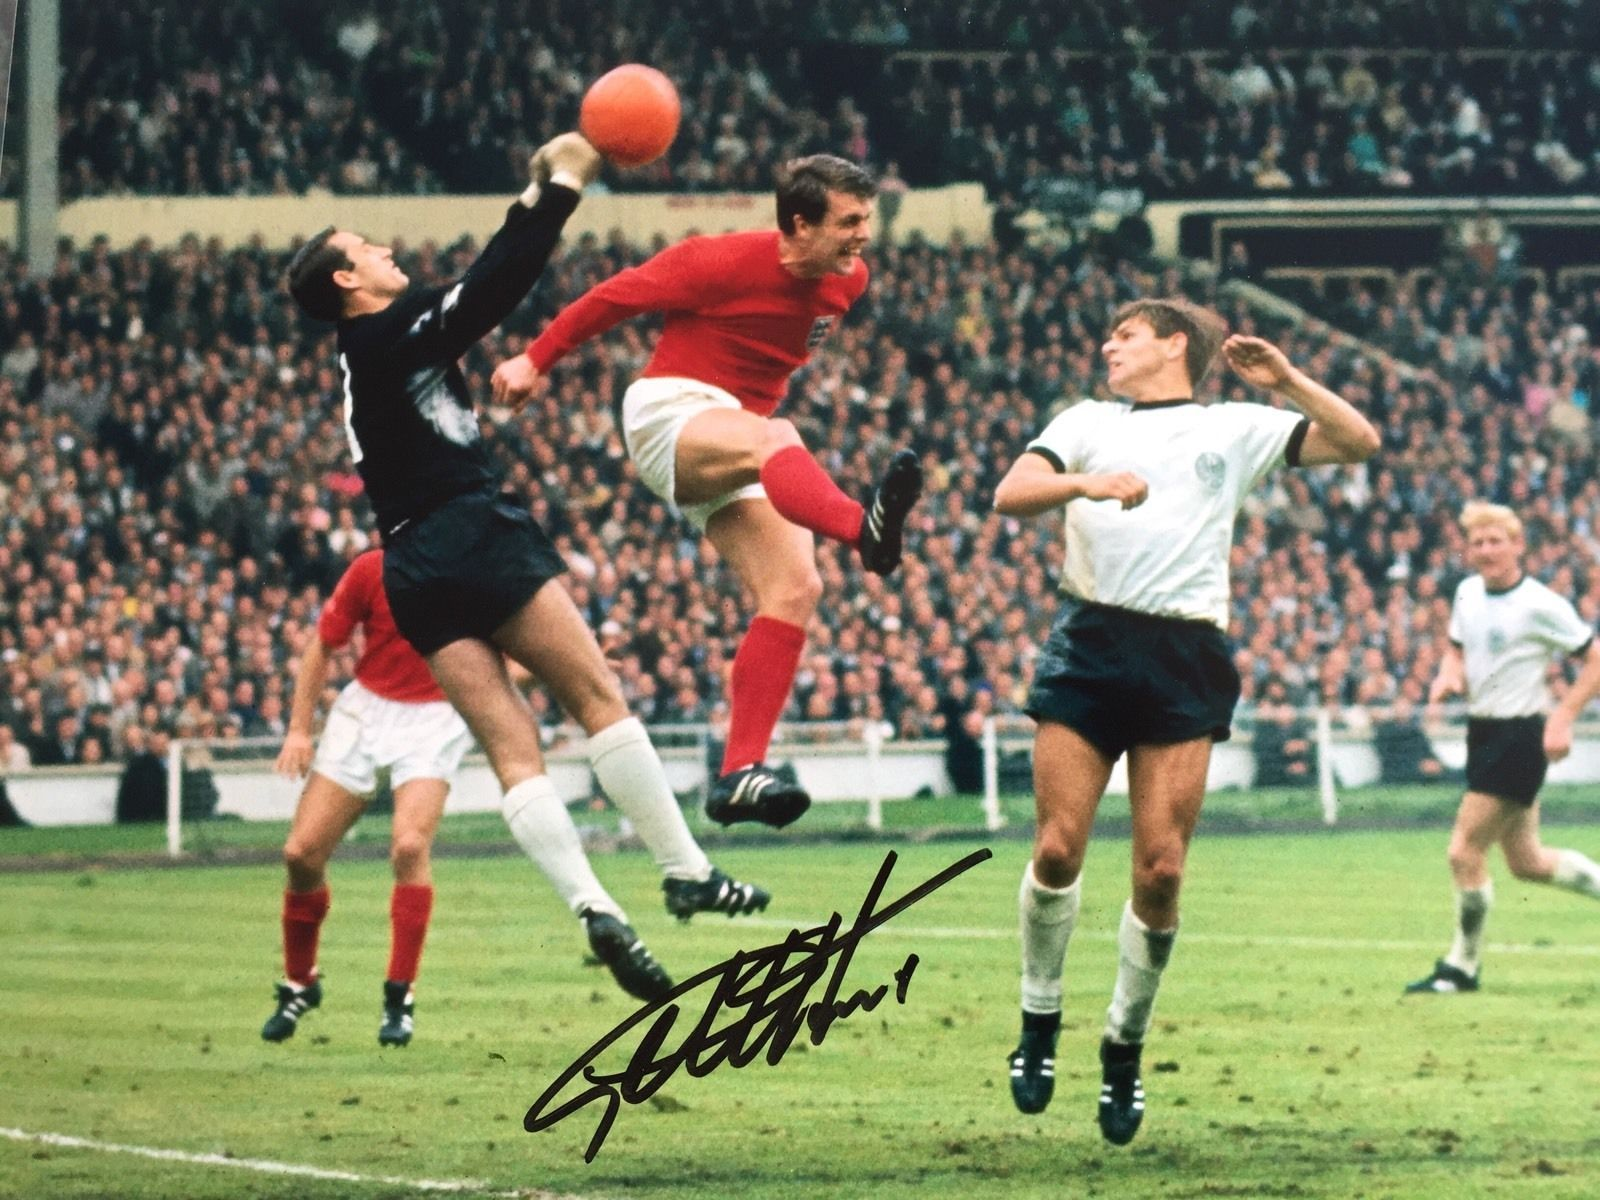 Sir Geoff Is Still The Only Man To Score A Hat Trick In A World Cup Final Sir Geoff 39 S Hat Trick Helped Engl World Cup Final 1966 World Cup Final World Cup